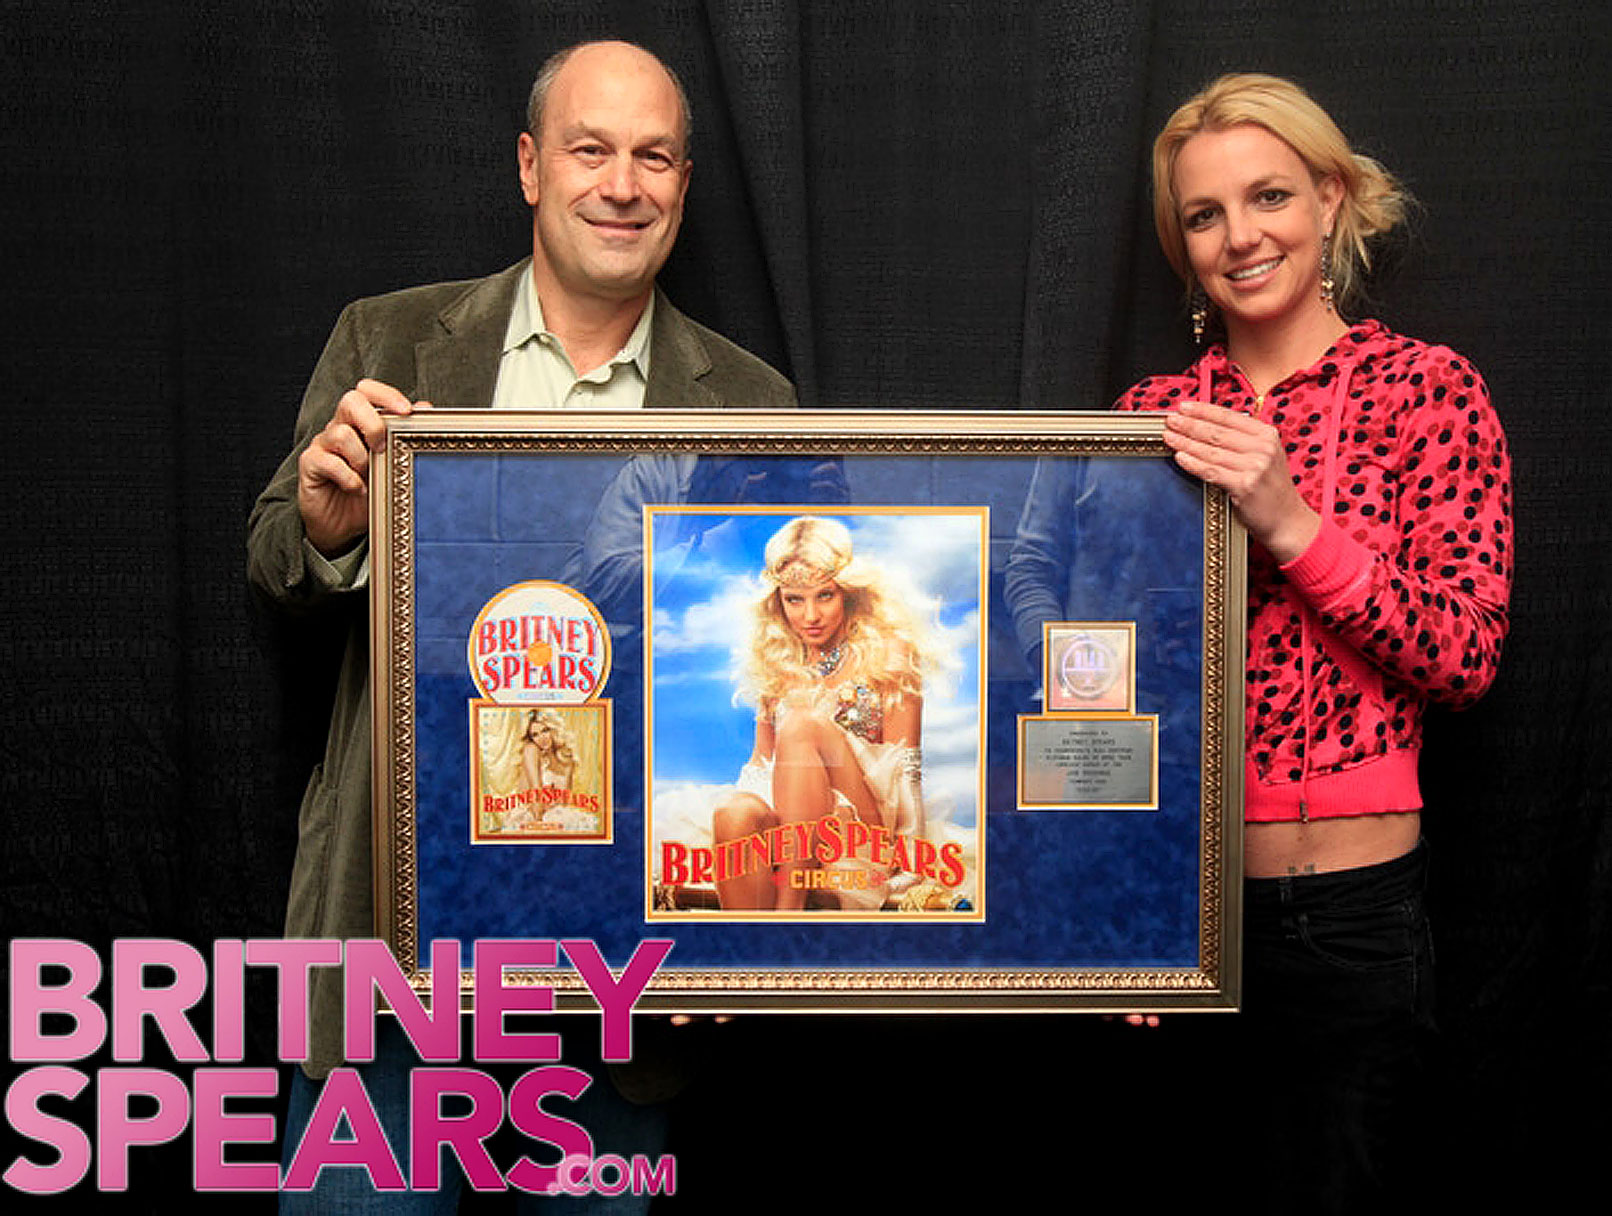 Britney Spears Gets Platinum Star in Montreal